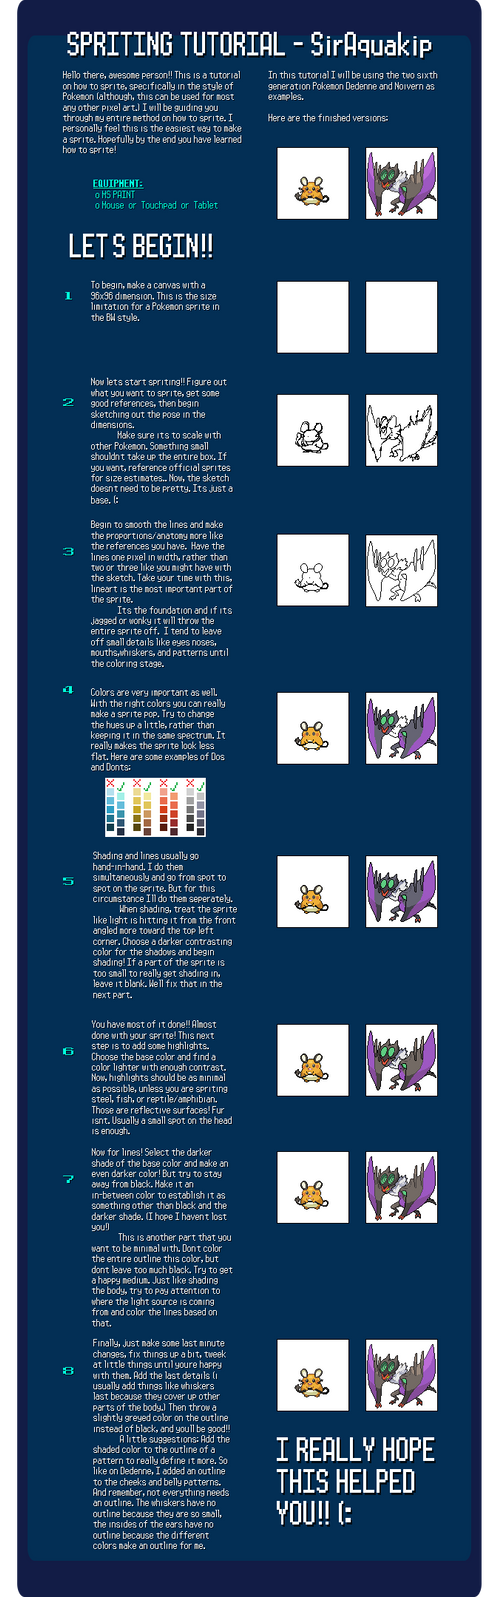 Spriting Tutorial - SirAquakip by SirAquakip